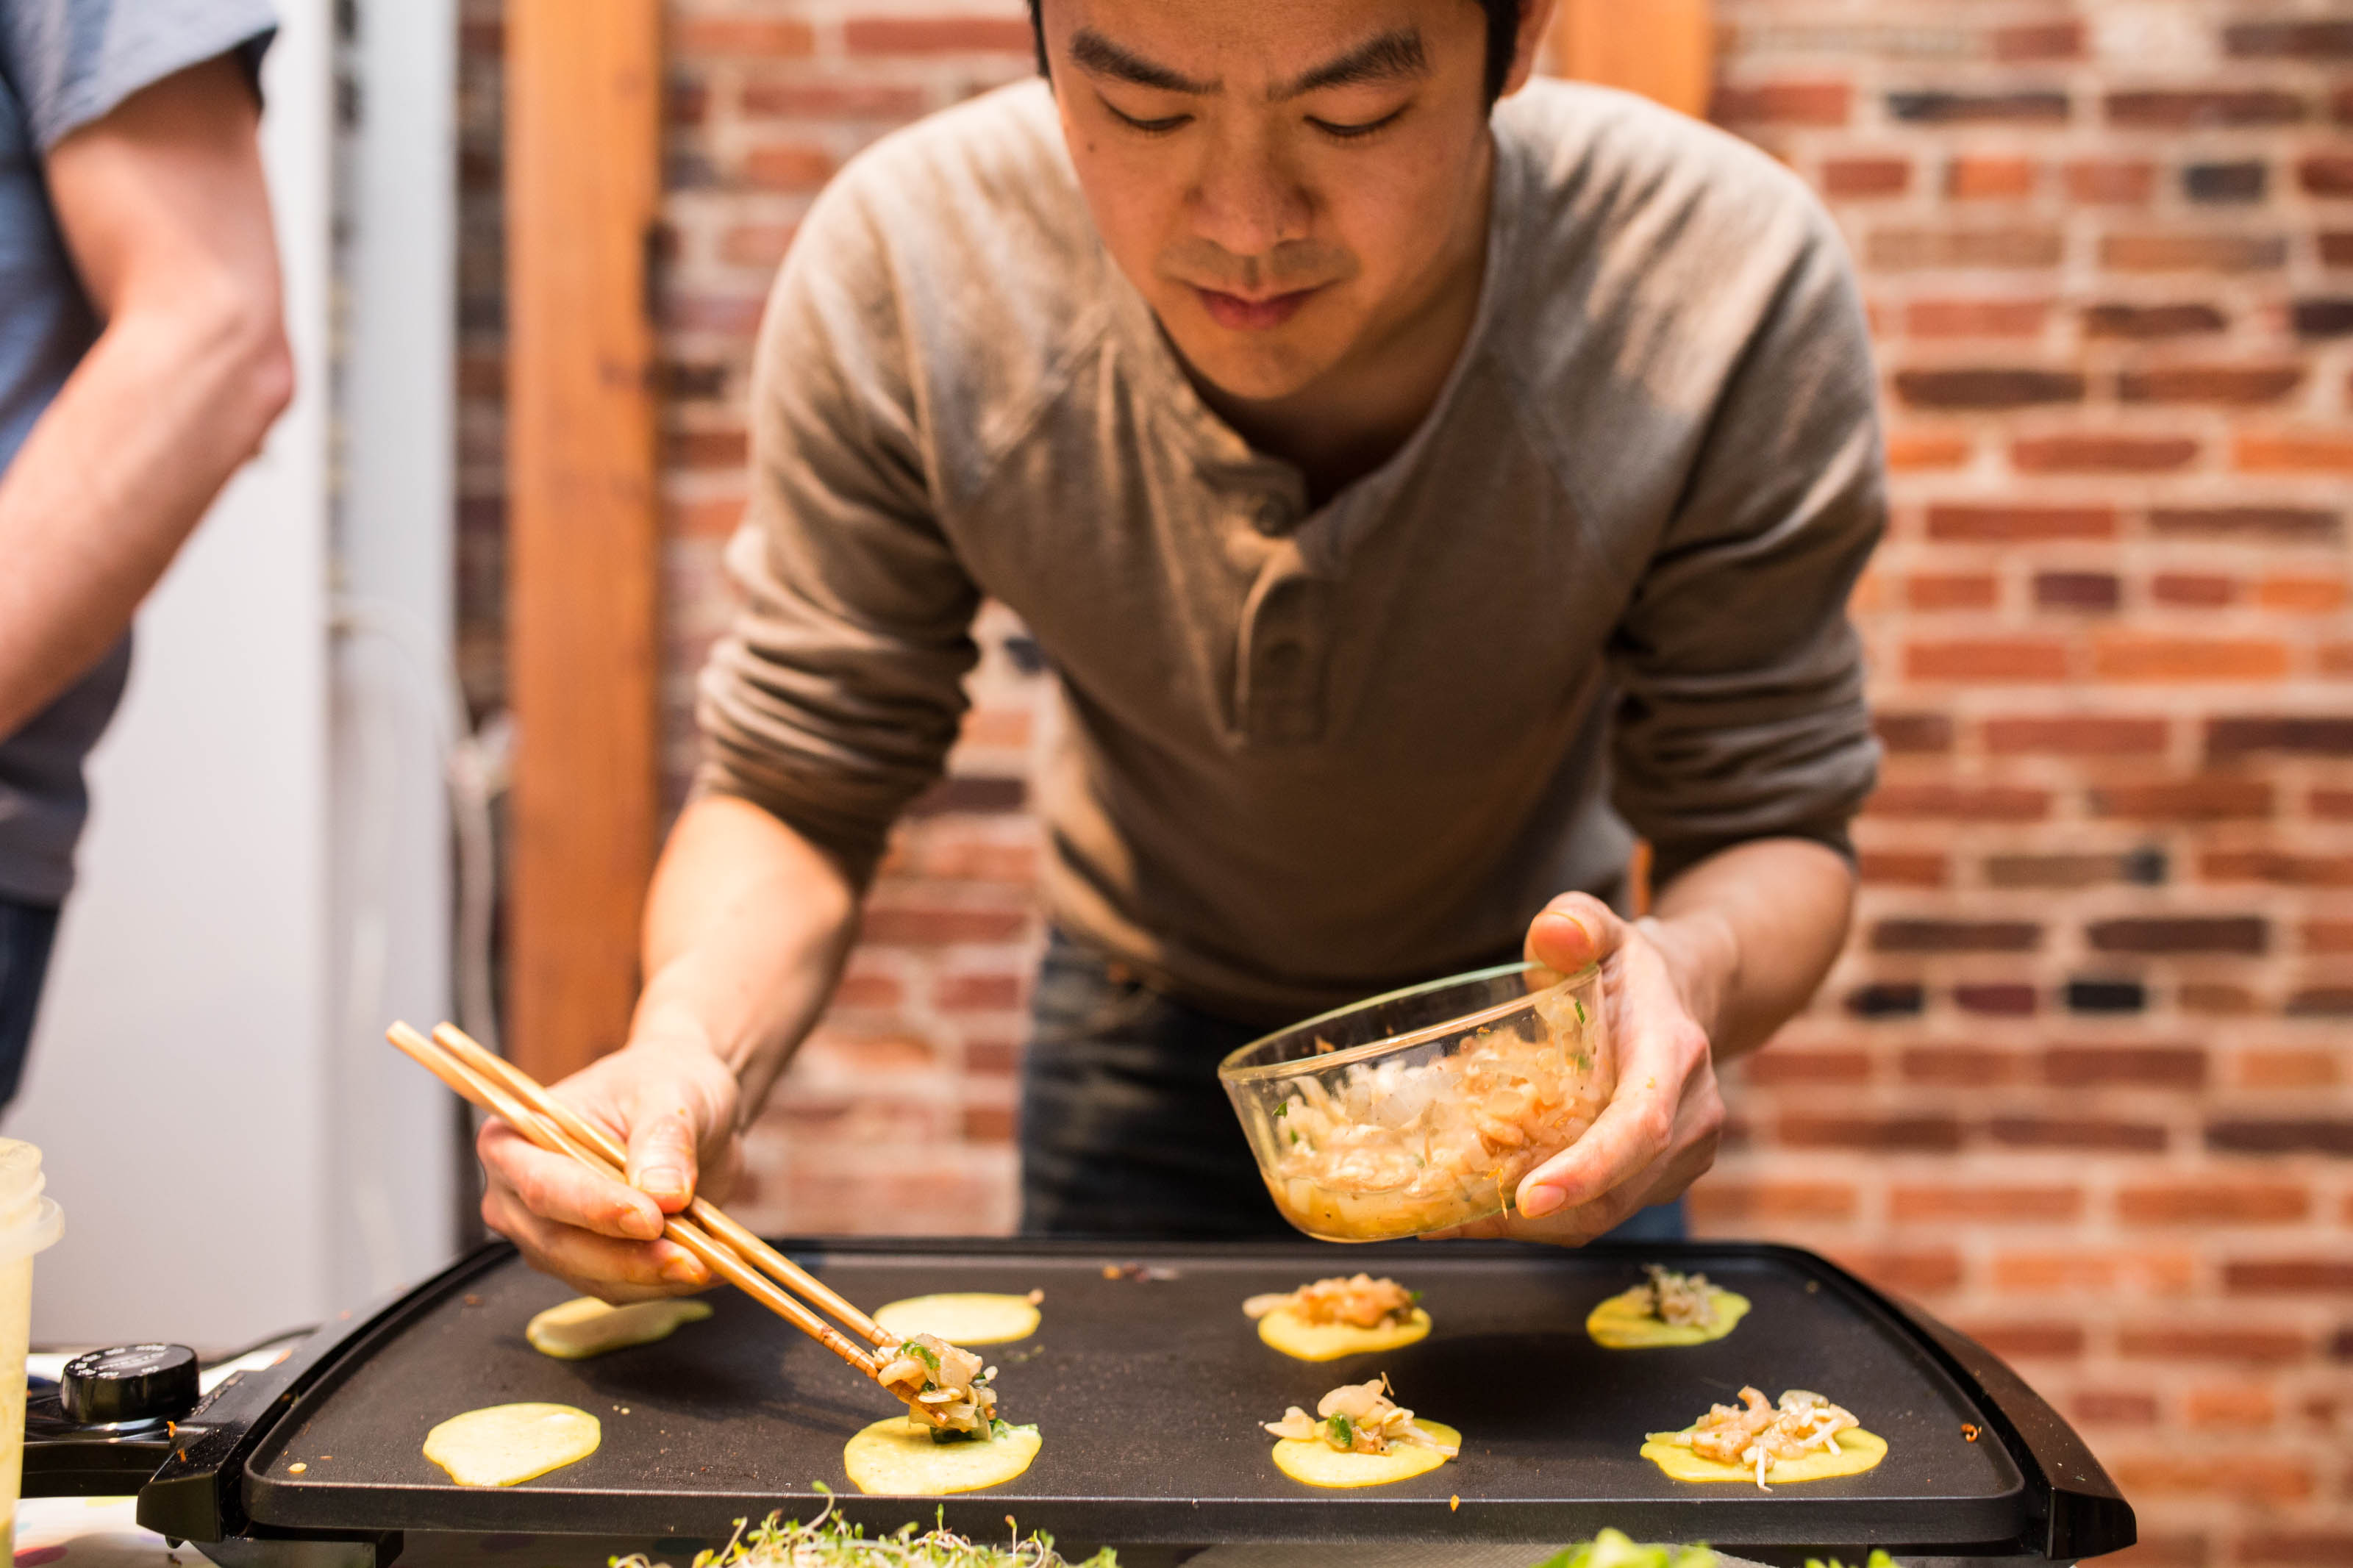 Phong Le prepares a tiny version of Banh Xeo at a 2017 Small Foods Party. Source: Small Foods Party, Baltimore MD.